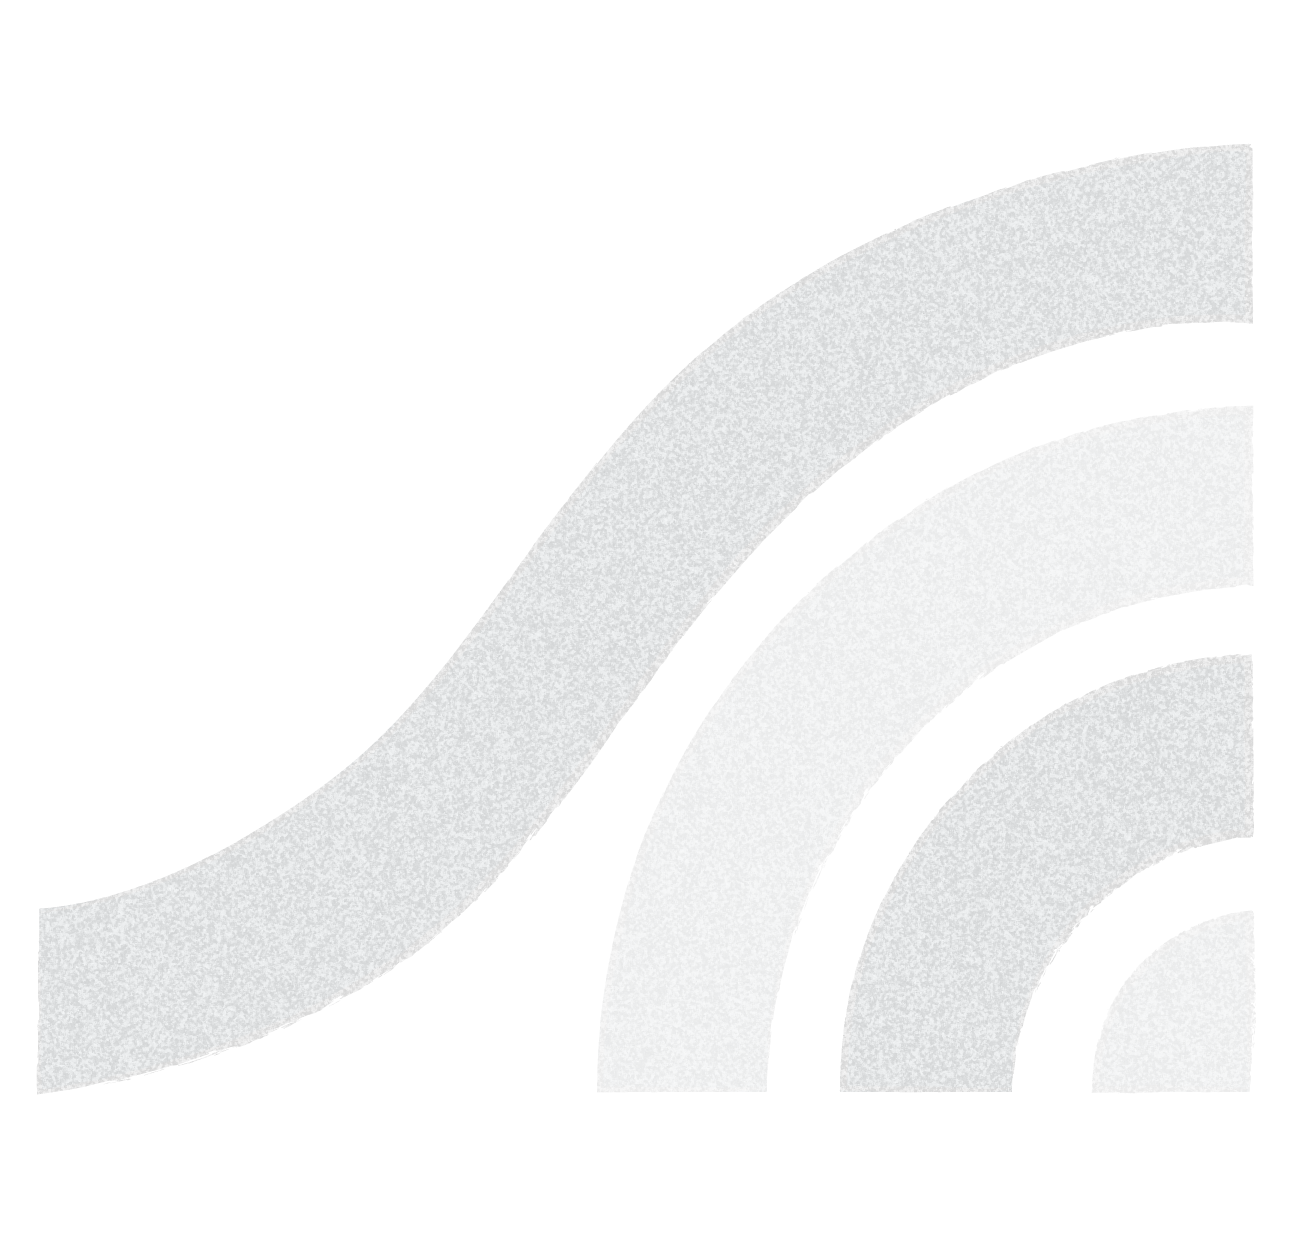 logo wave over rss feed